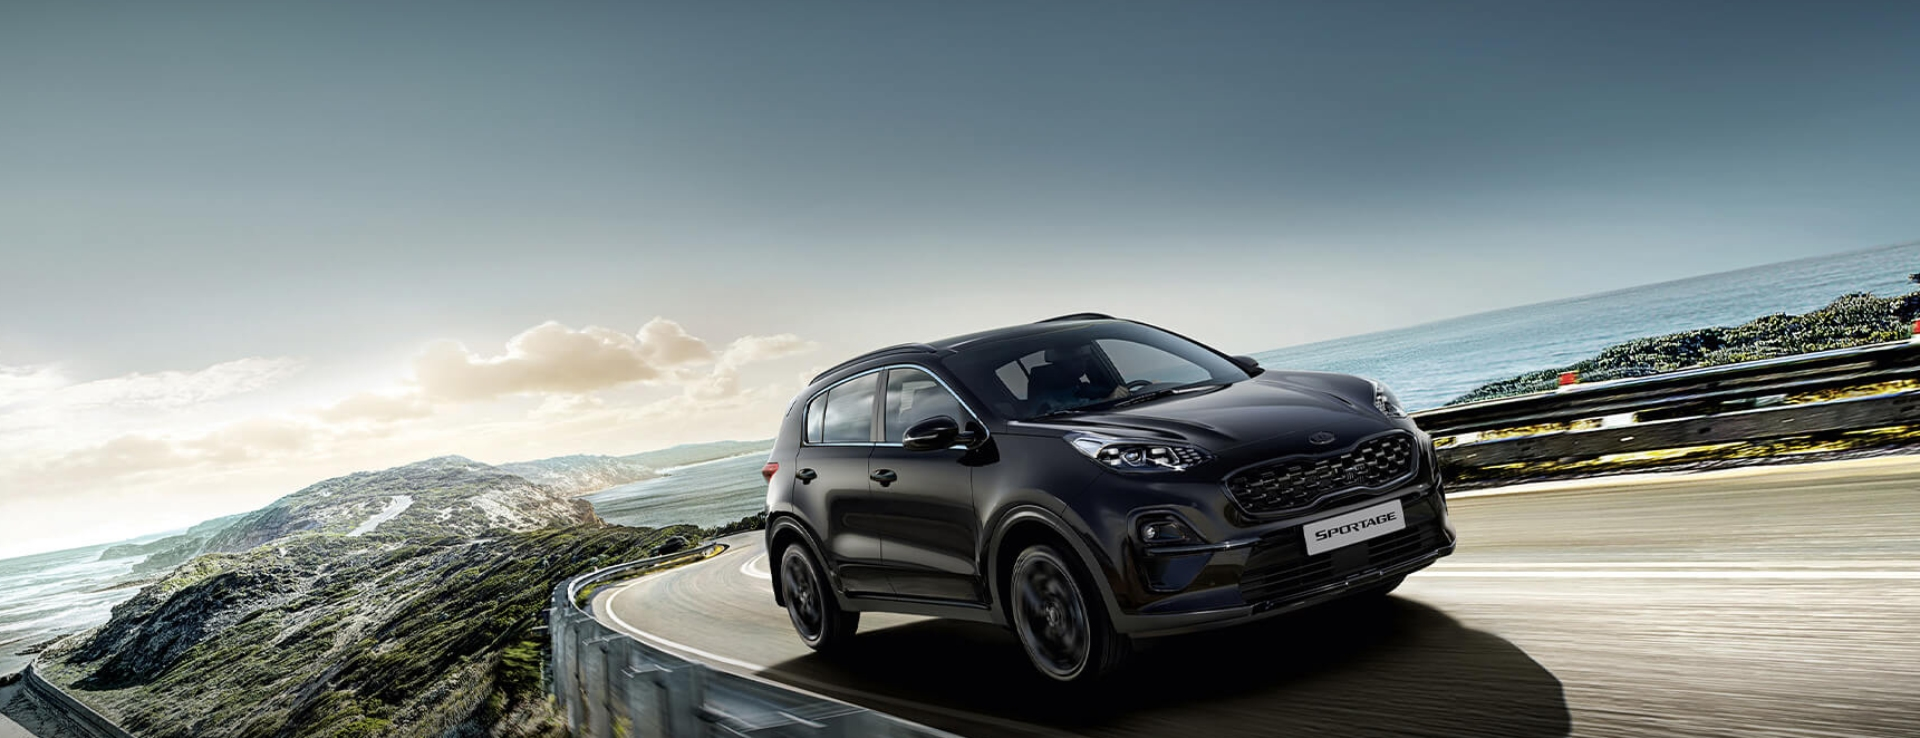 Die neue Sportage Black Edition.>From Media Library